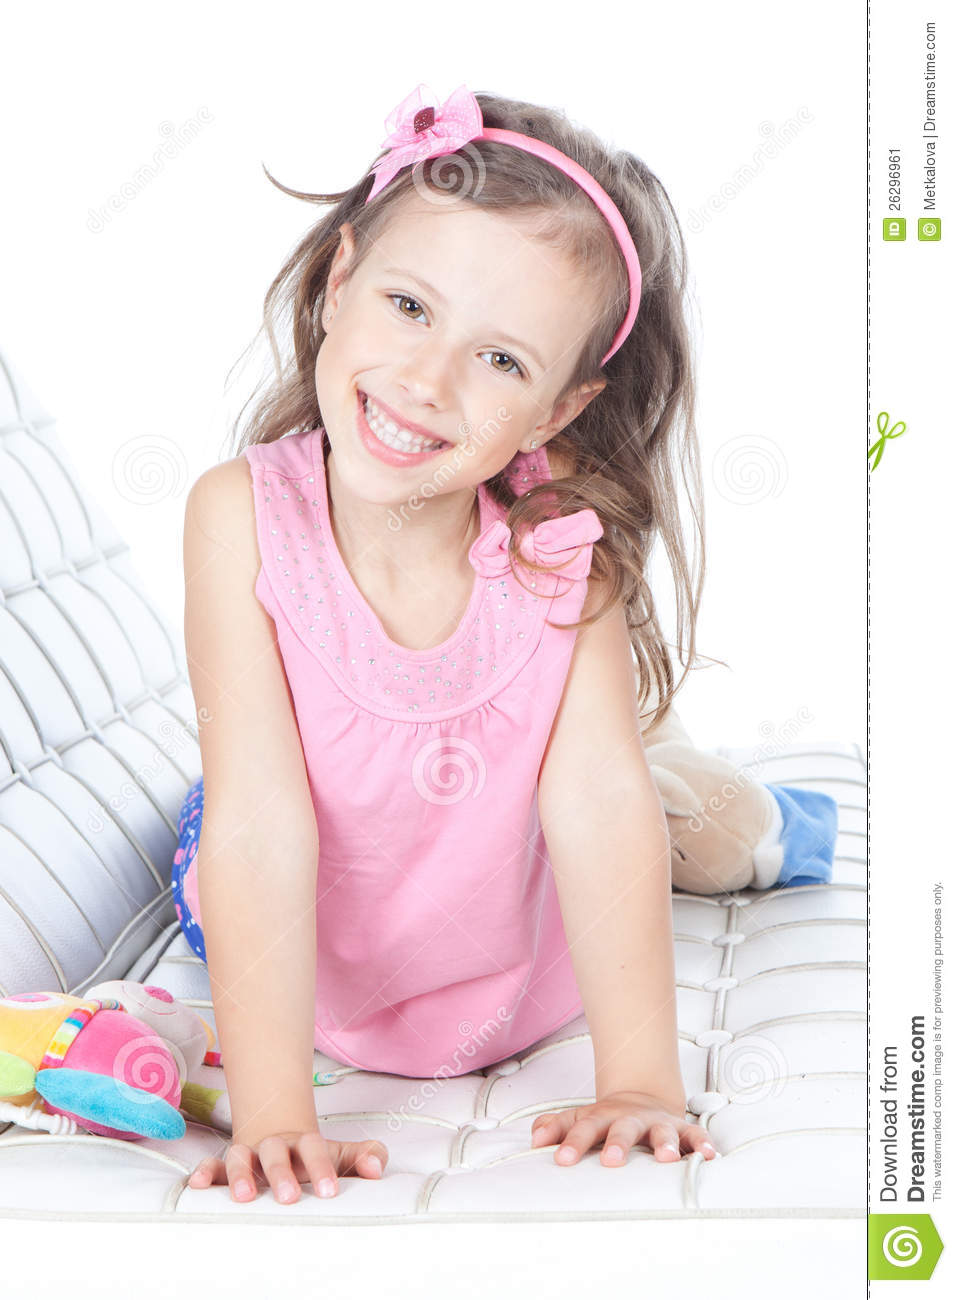 Beautiful Little Girl Lying On A Sofa Stock Image - Image Of Cheerful, Smiling 26296961-3196